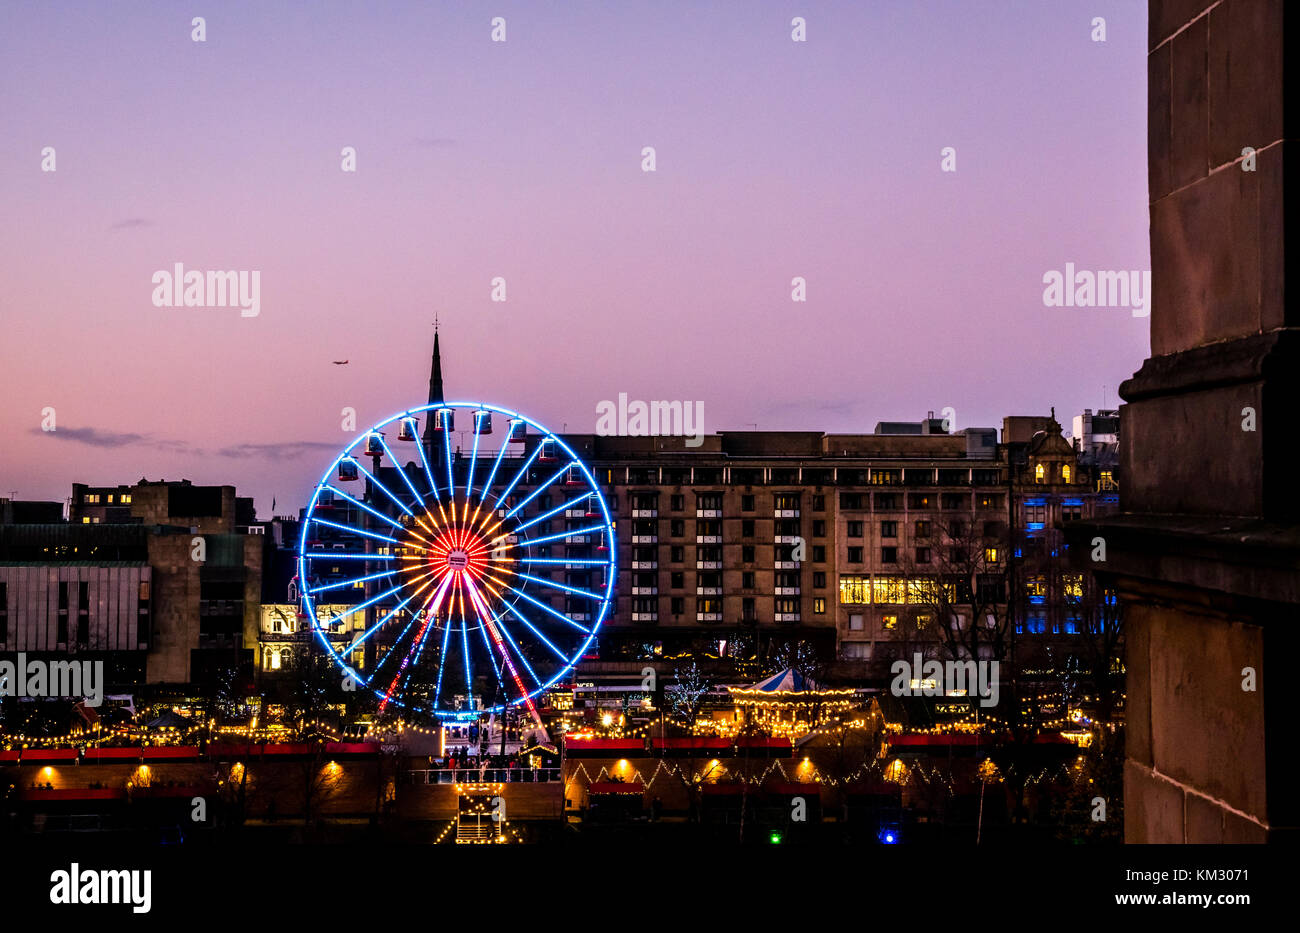 View across Princes Street Gardens to Forth 1 Big Wheel, with Bank of Scotland headquarters in foreground, celebrating - Stock Image